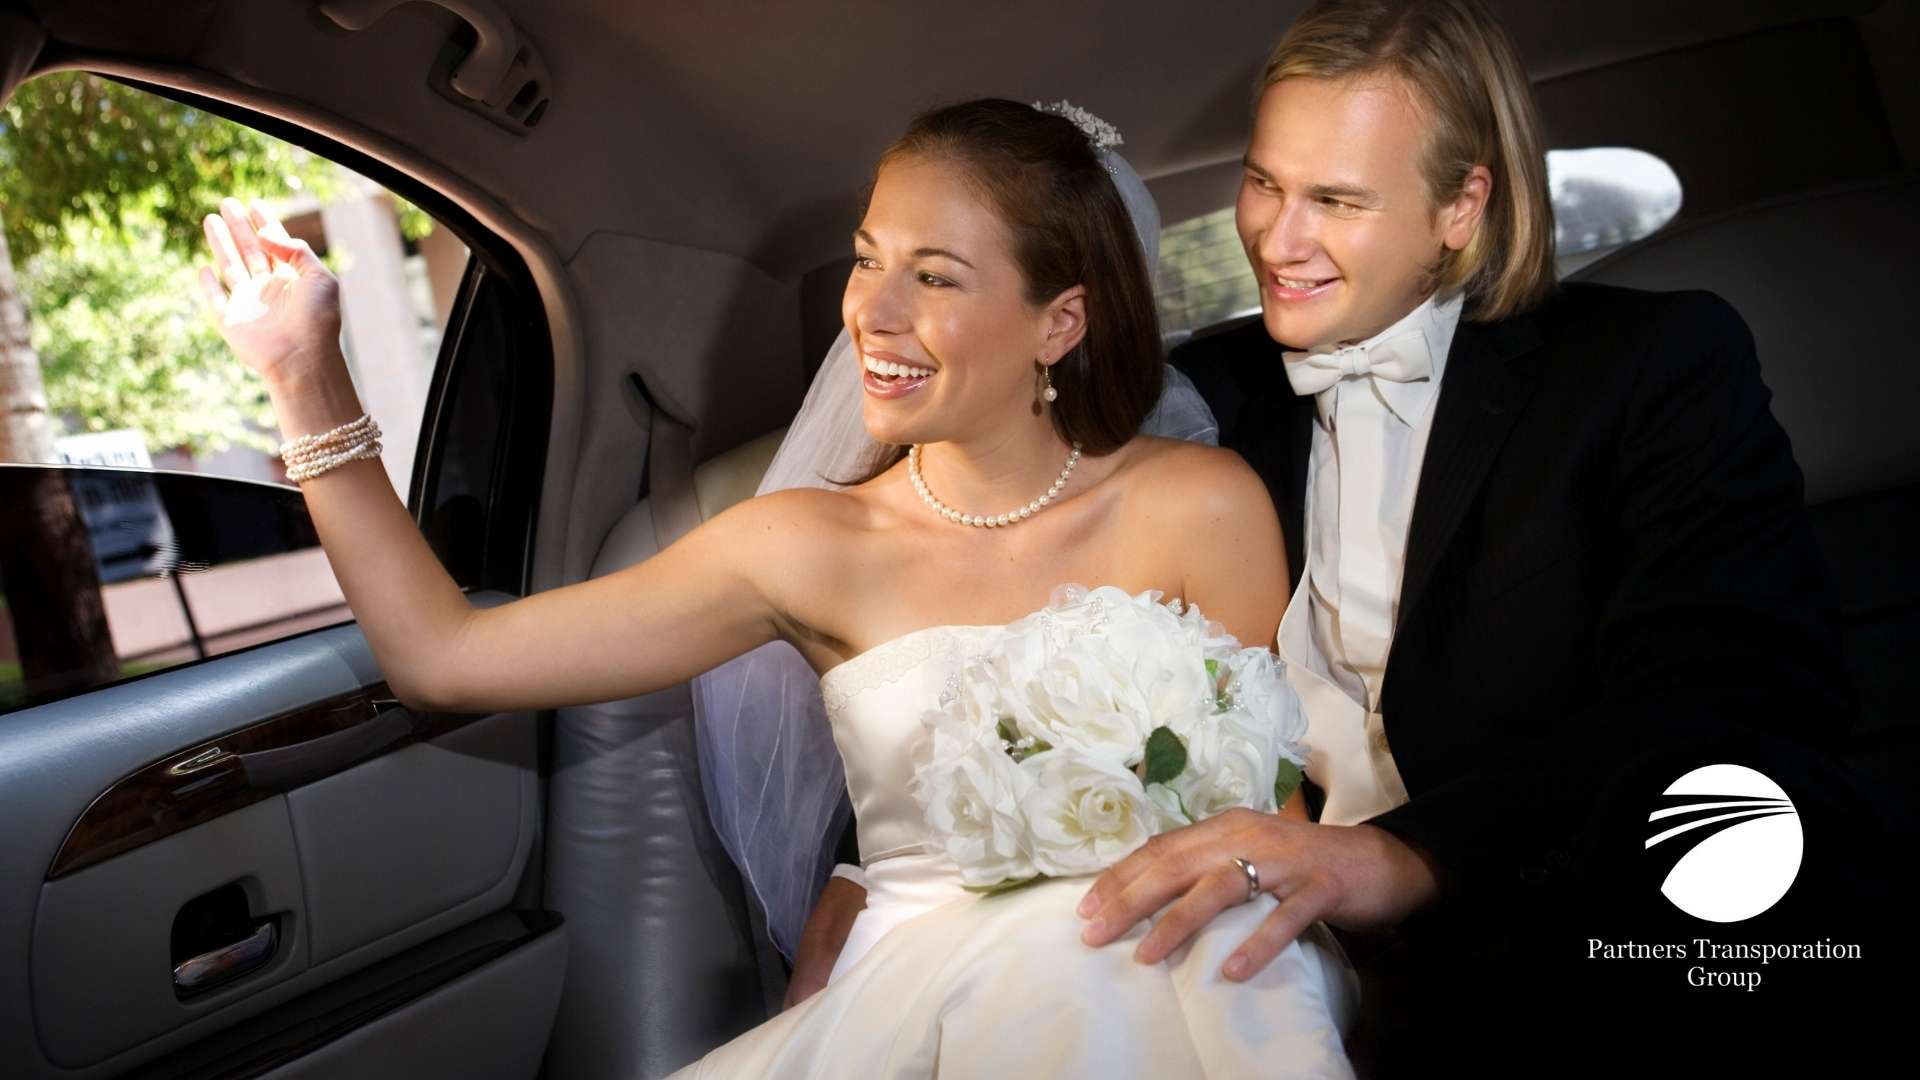 rent a limo for your wedding in new jersey